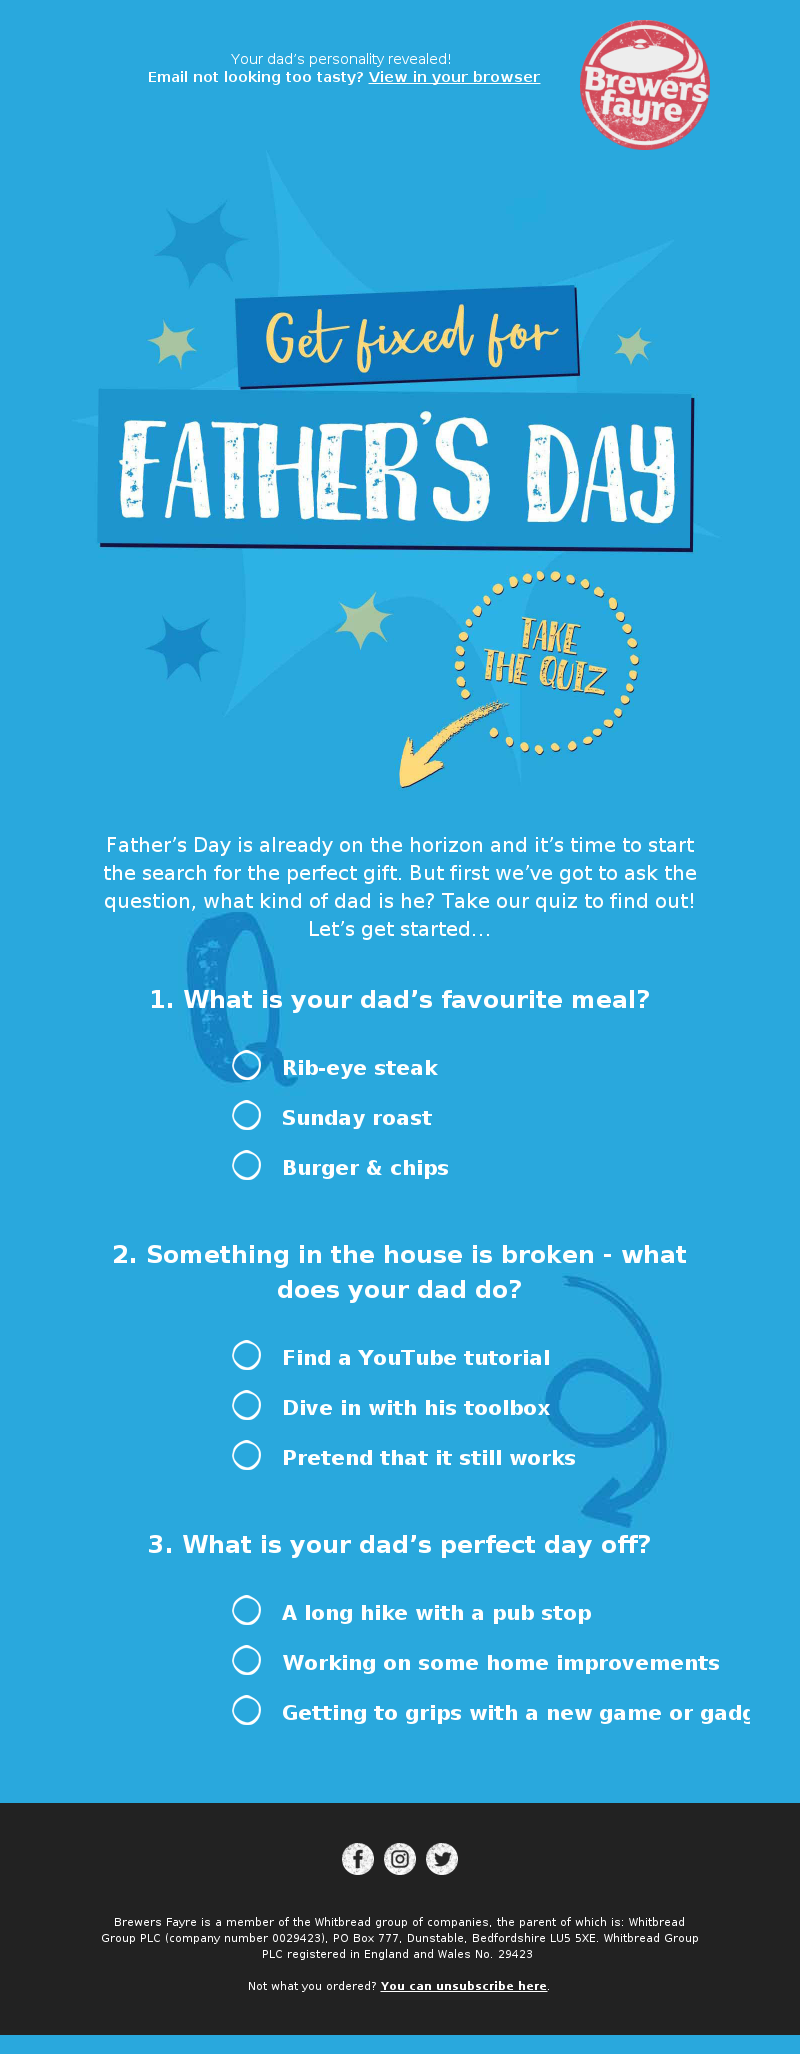 Brewers Fayre (UK) - Take our Father's Day quiz